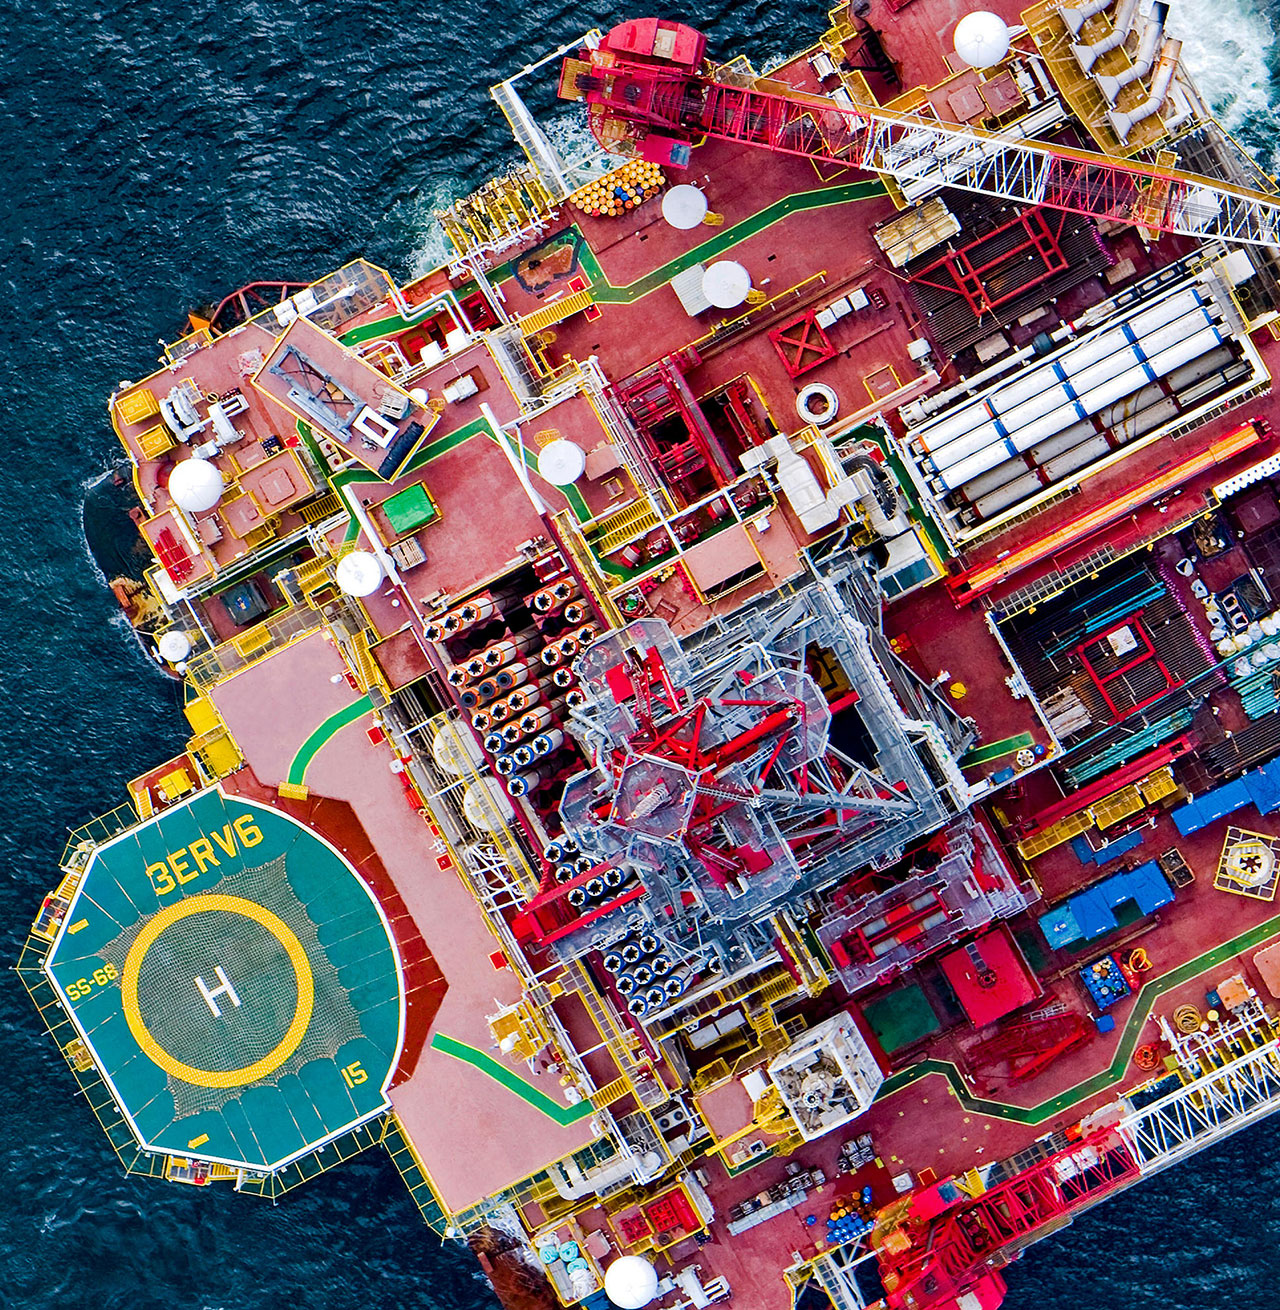 Drilling rig at sea from above